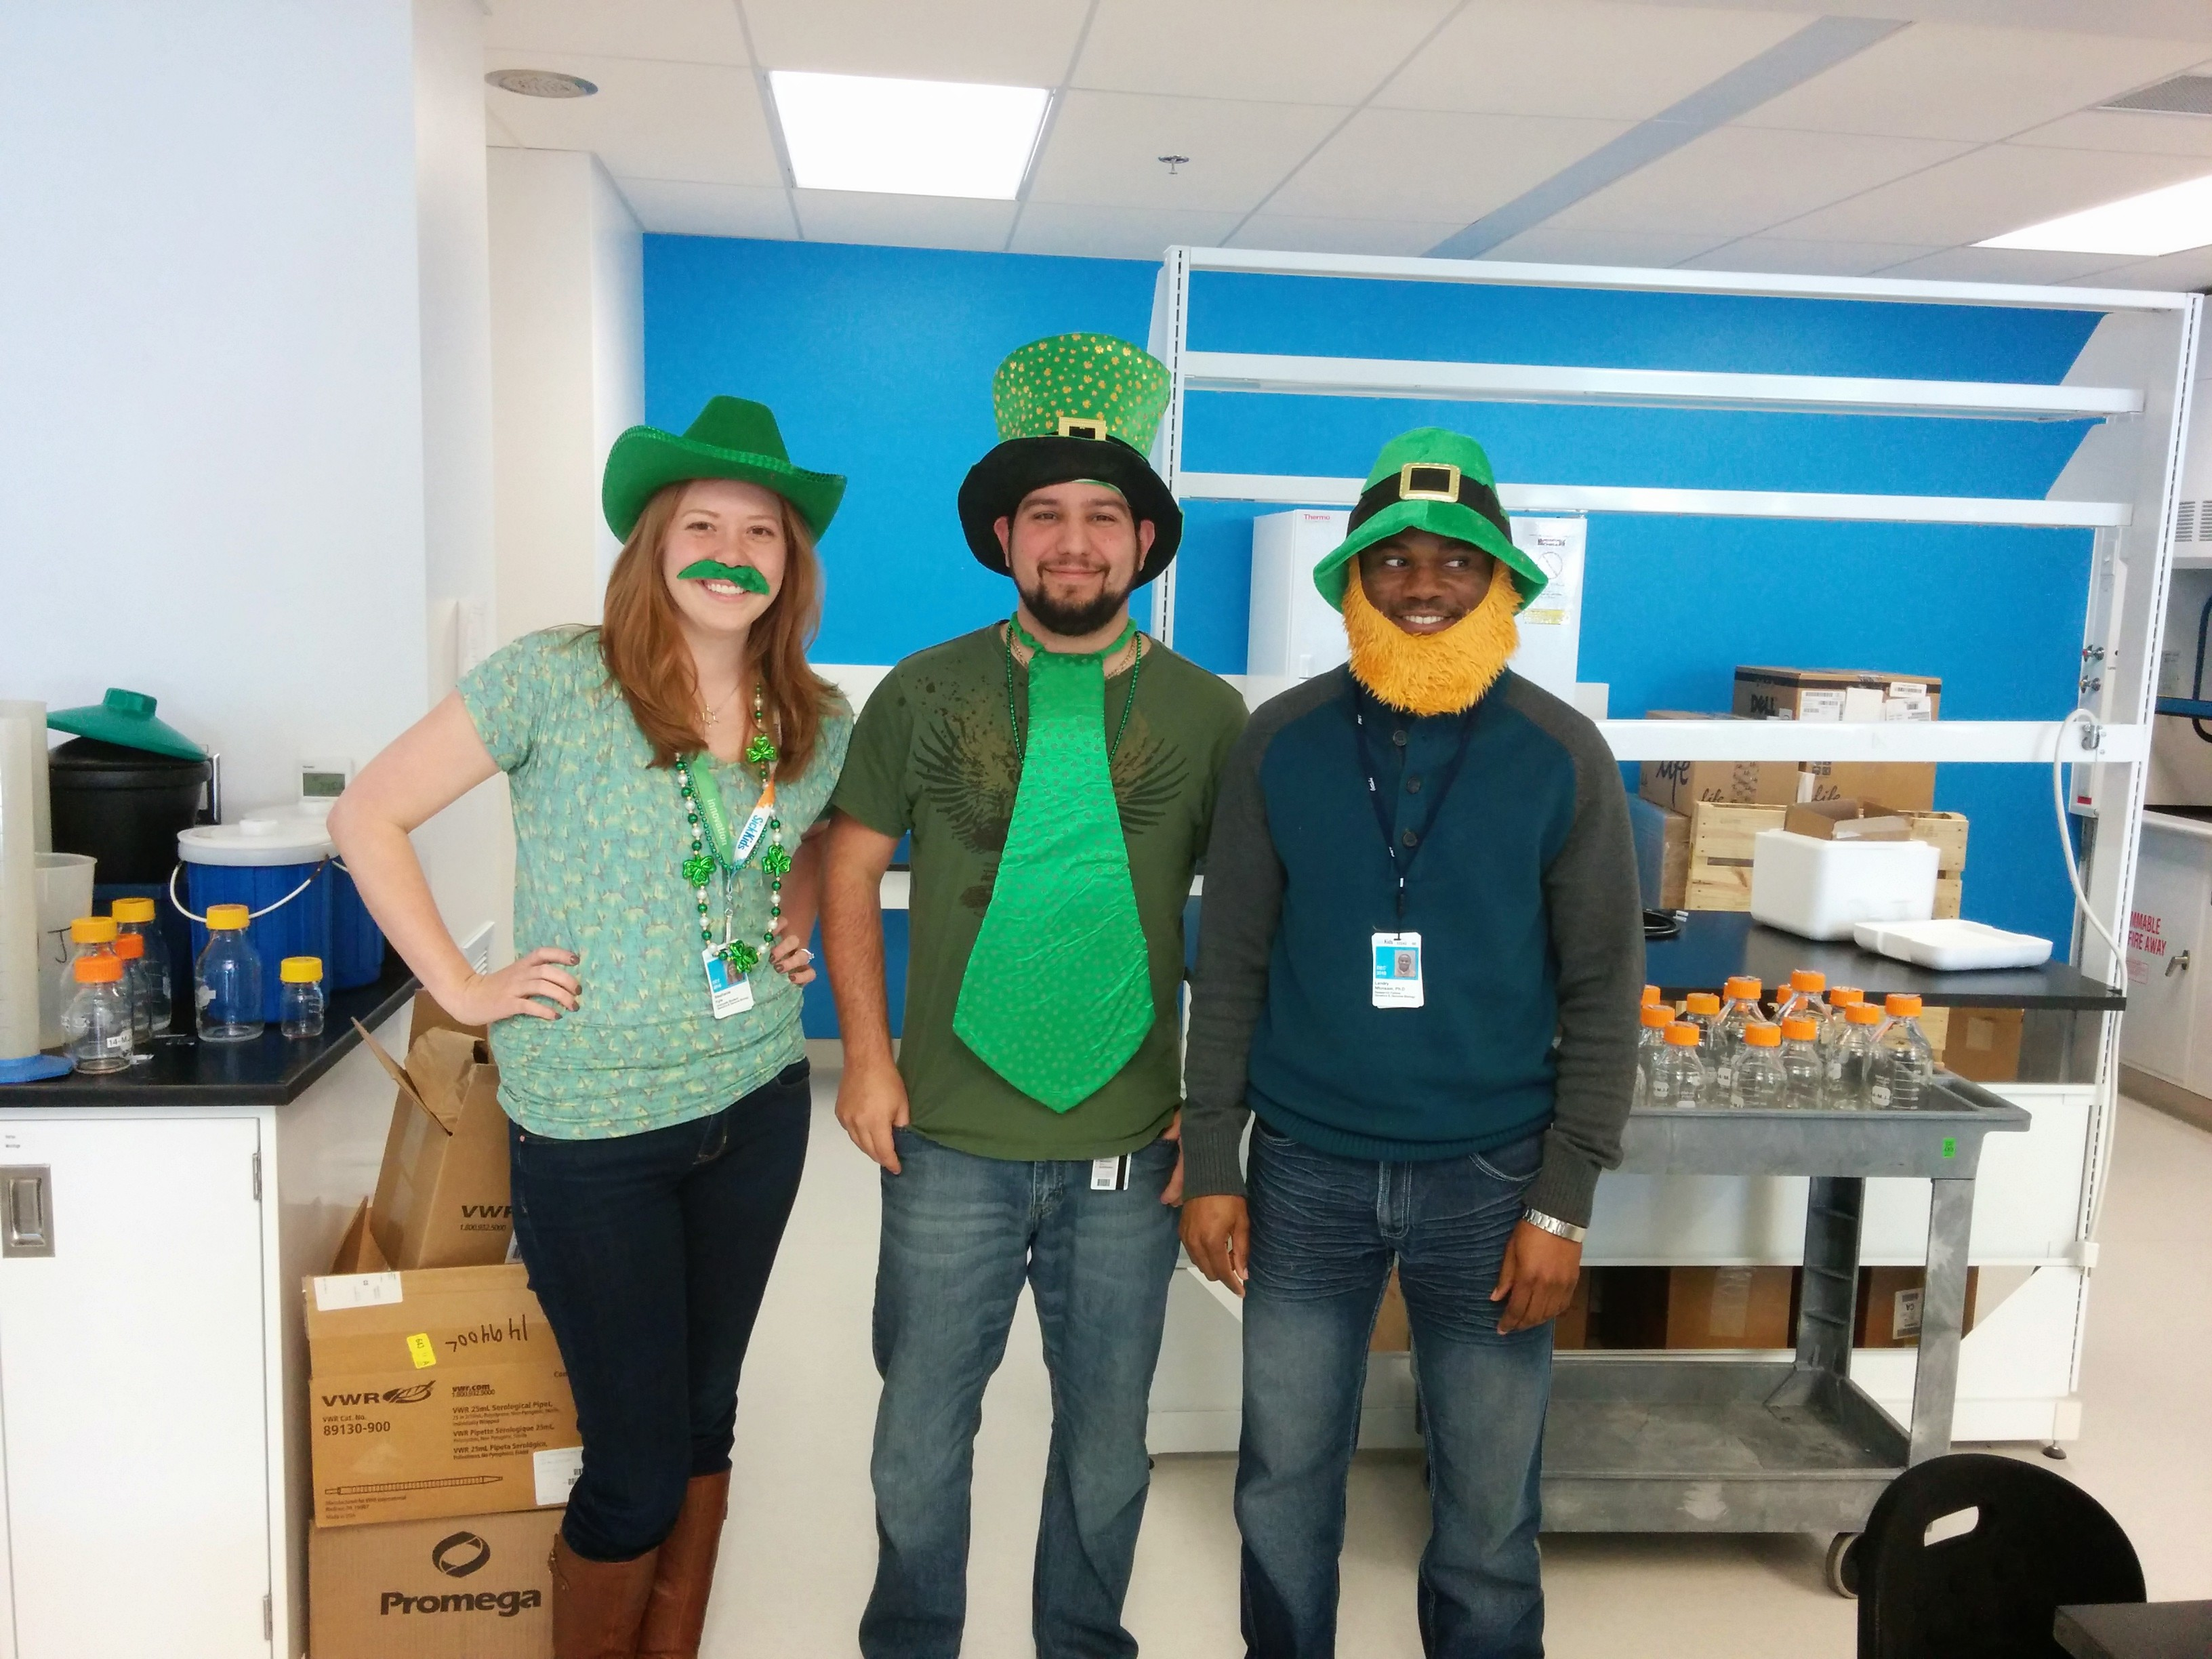 Group lab photo, st patrick's day